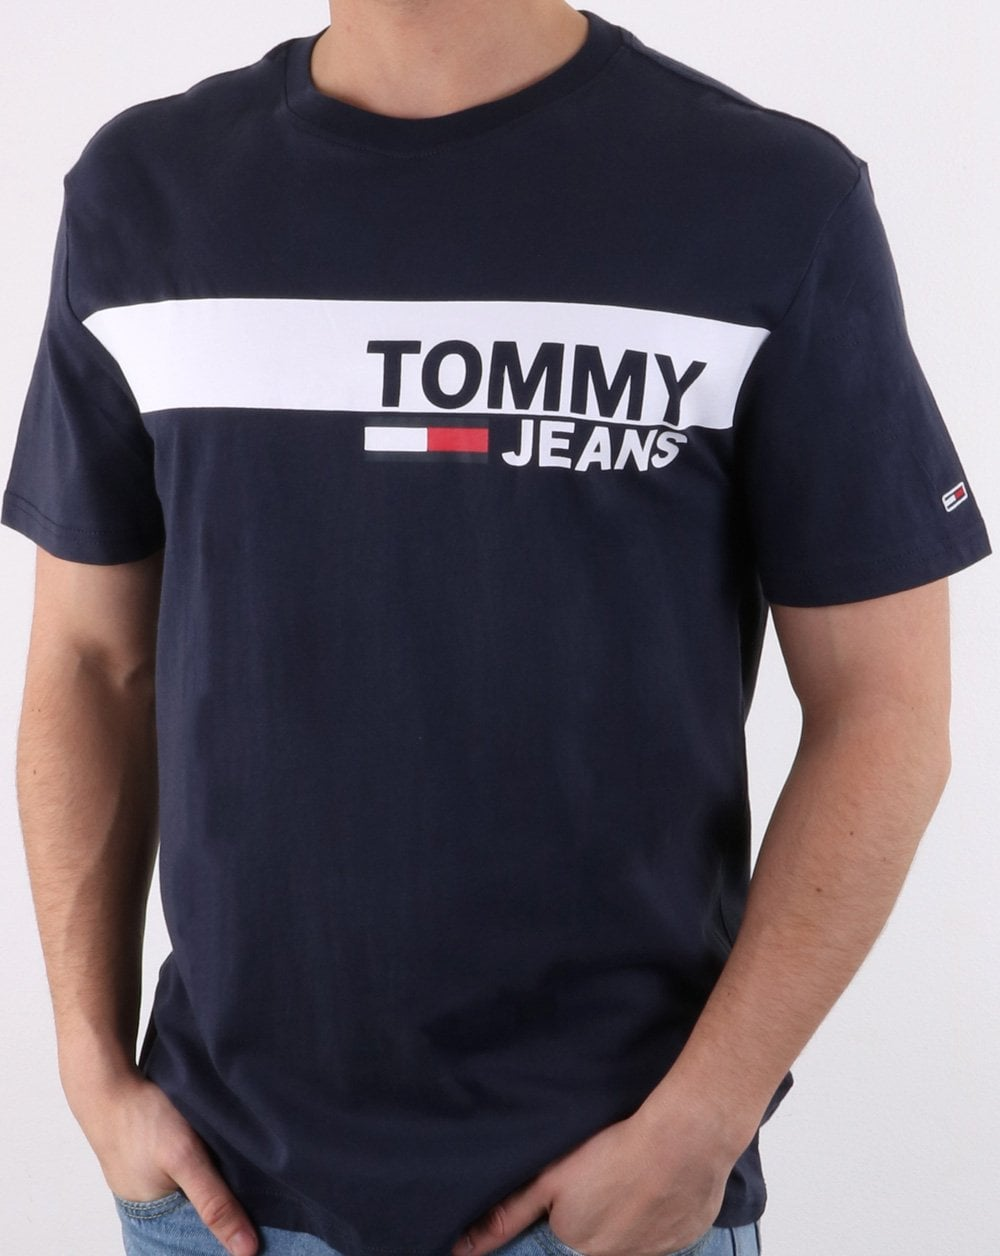 Tommy Jeans Box Logo T Shirt | Quality